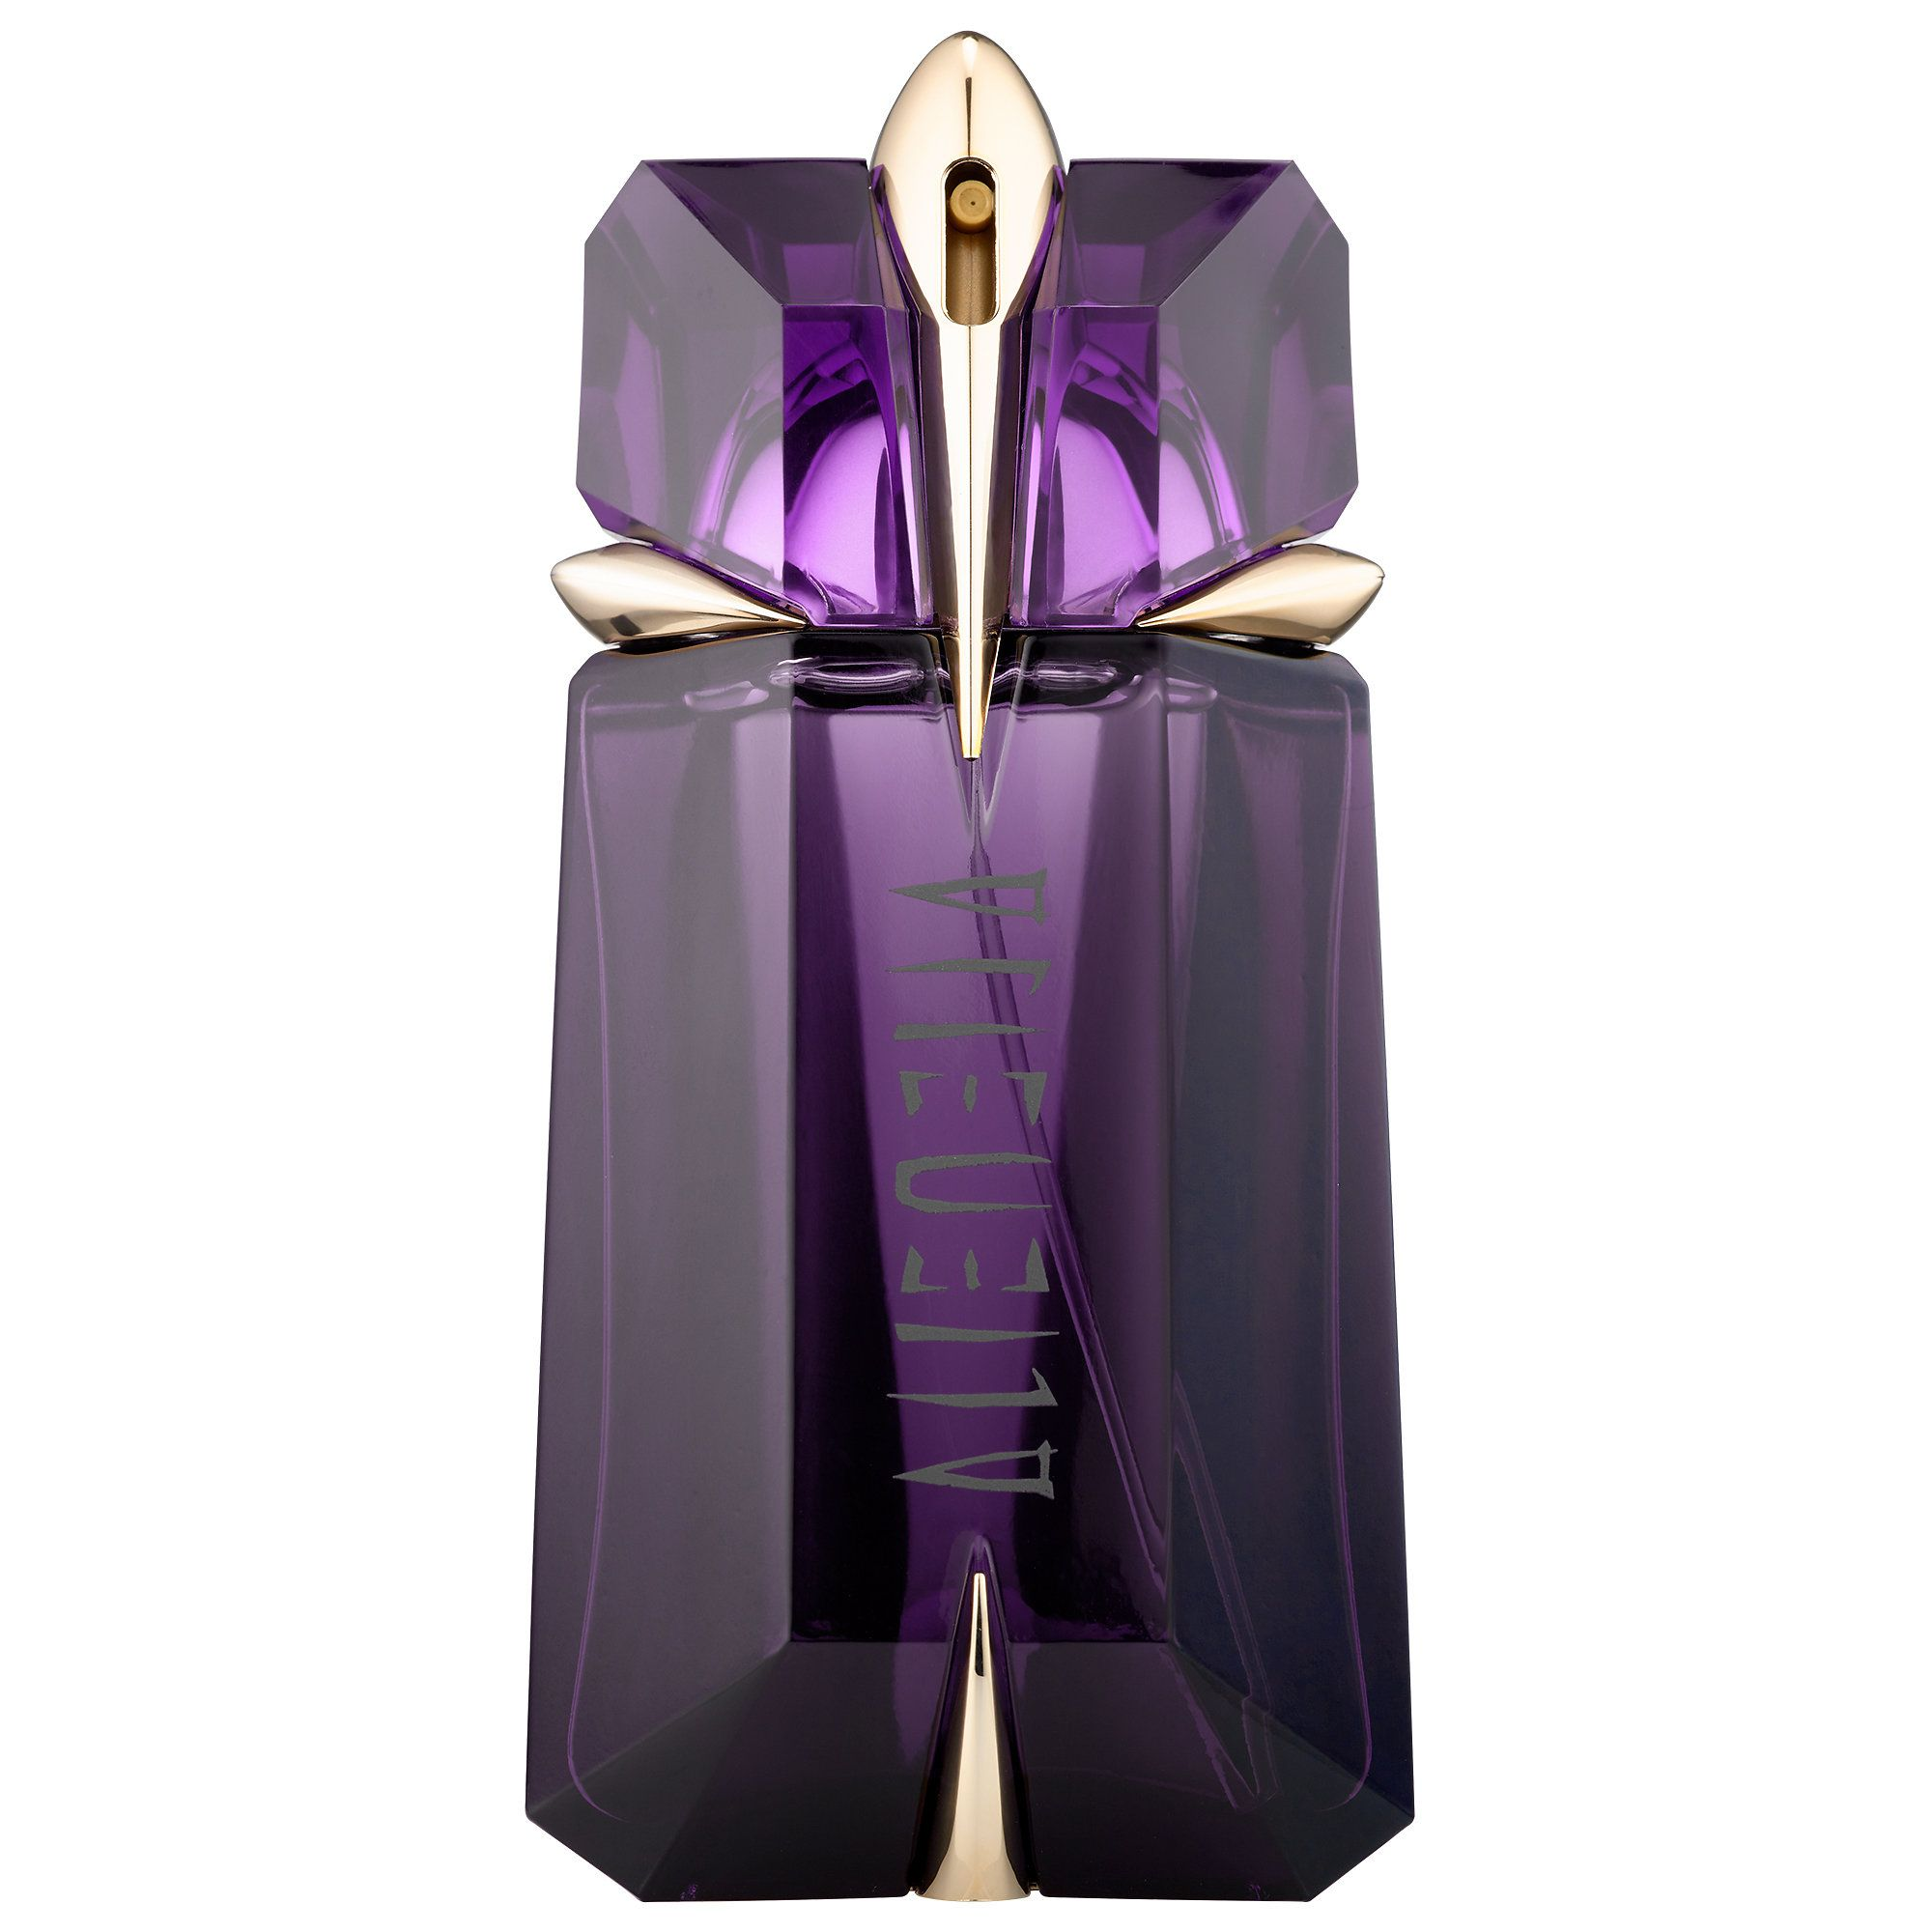 Alien Perfume Refill Sephora: Thierry Mugler Alien Perfume Evokes The Scent Of Wood Warmed By The Sun, Exuding Radiance And